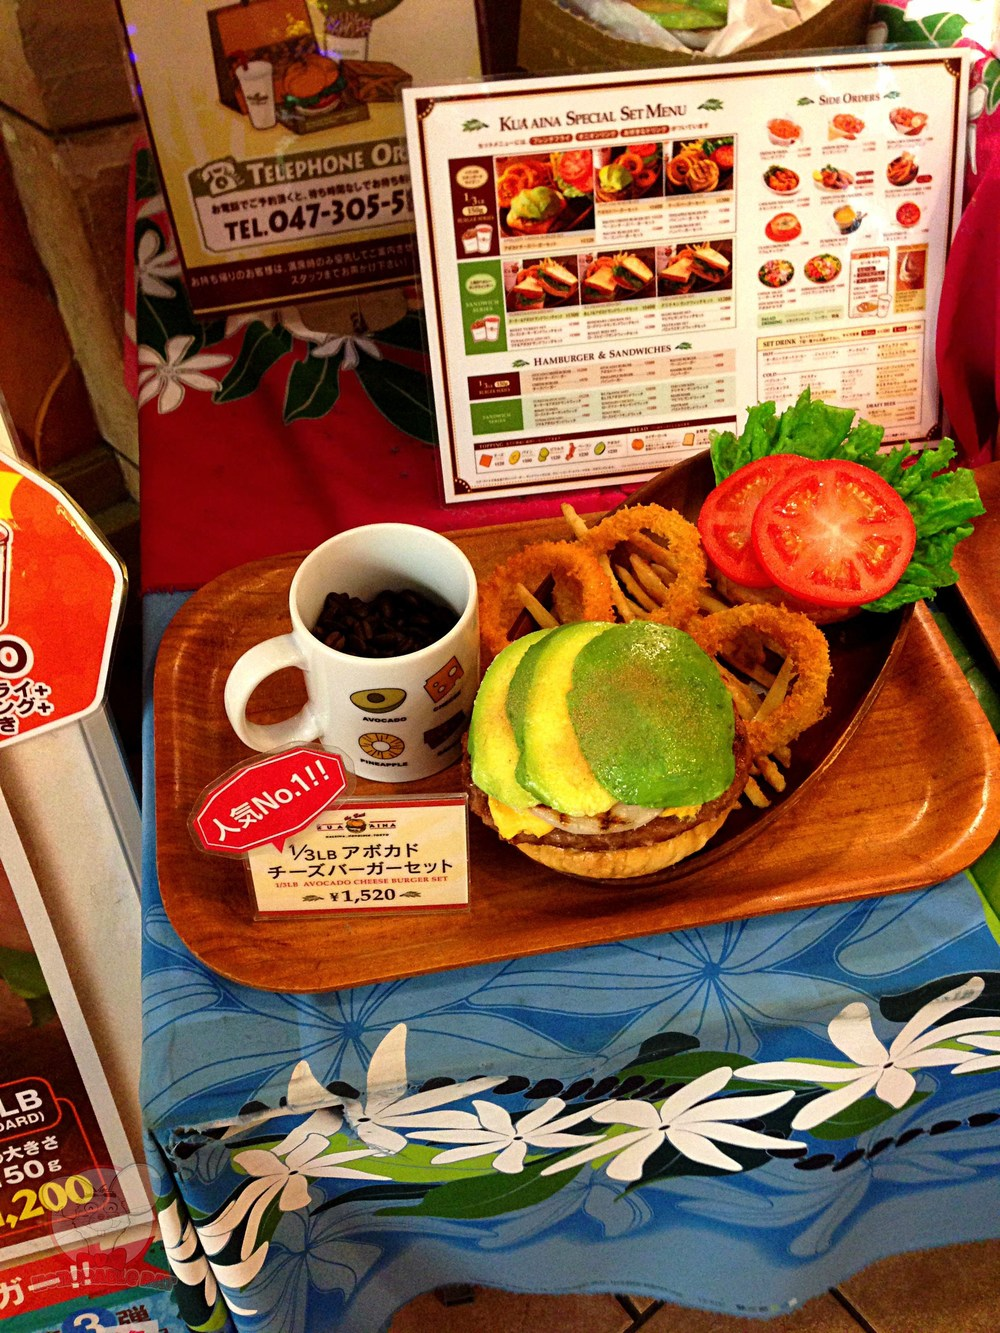 The number 1 burger in Kua'Aina Japan. The Avocado burger. I never liked avocado. Pineapple's better, in my opinion